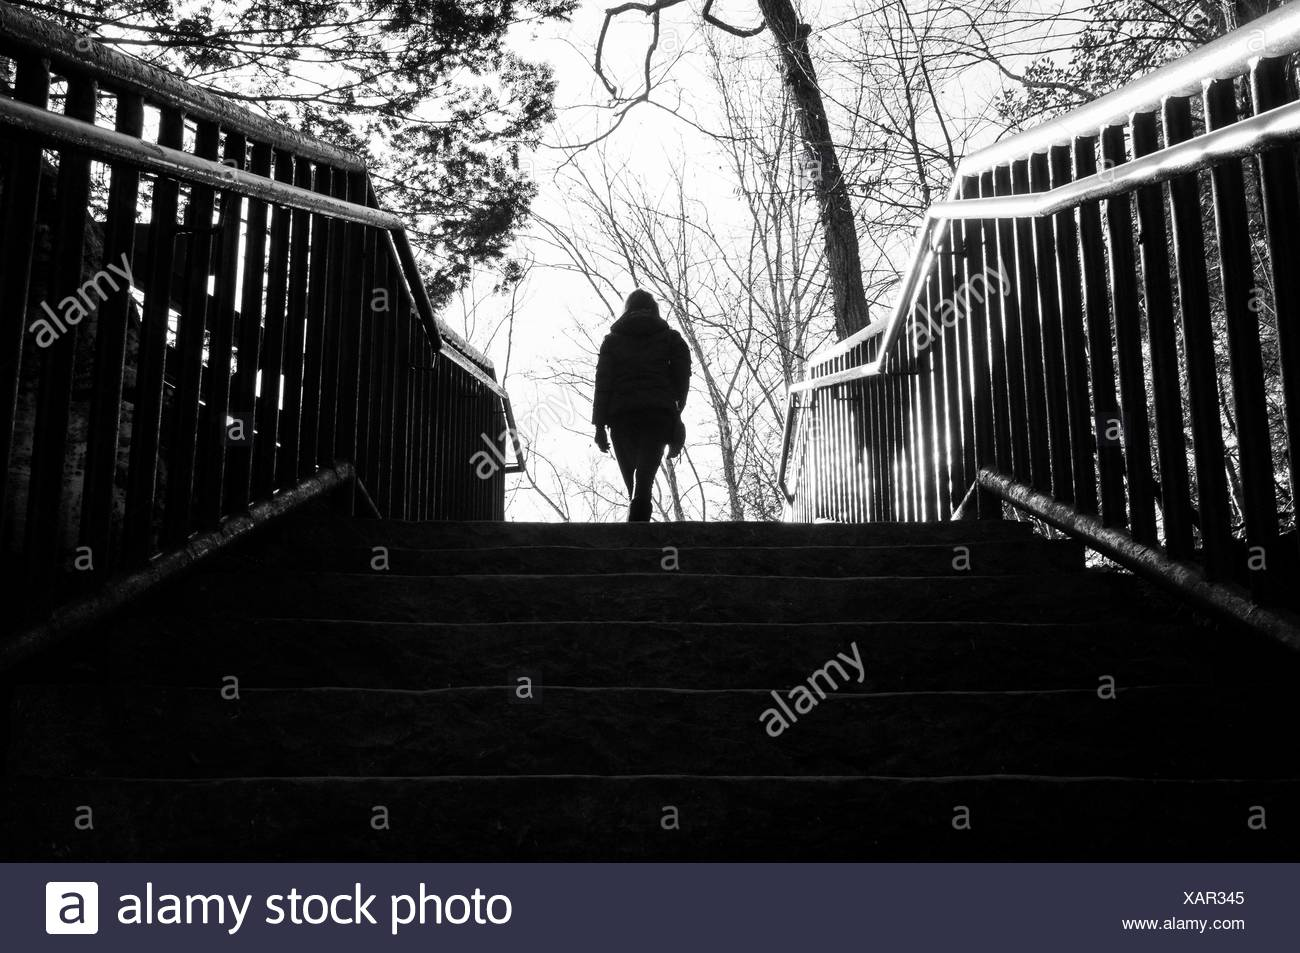 Silhouette Person Walking On Staircase In Park - Stock Image